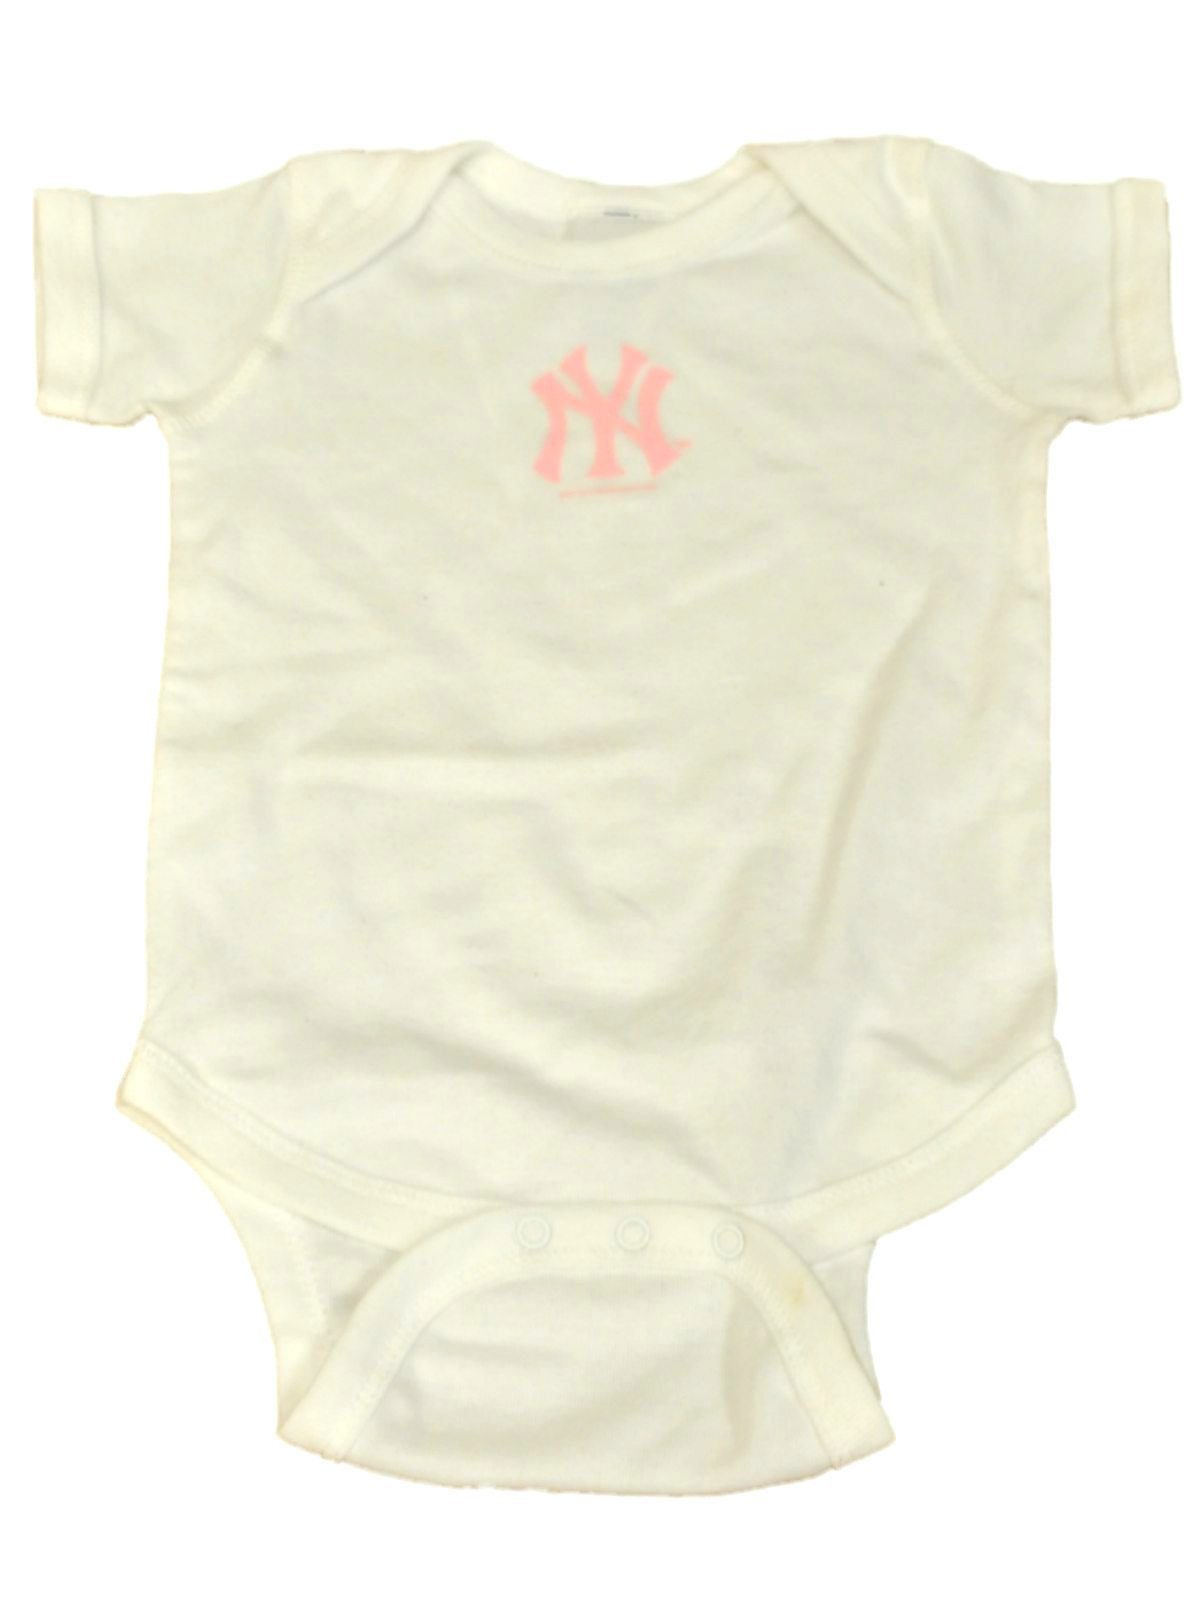 New York Yankees SAAG Infant Girls White Pink Logo e Piece Outfit